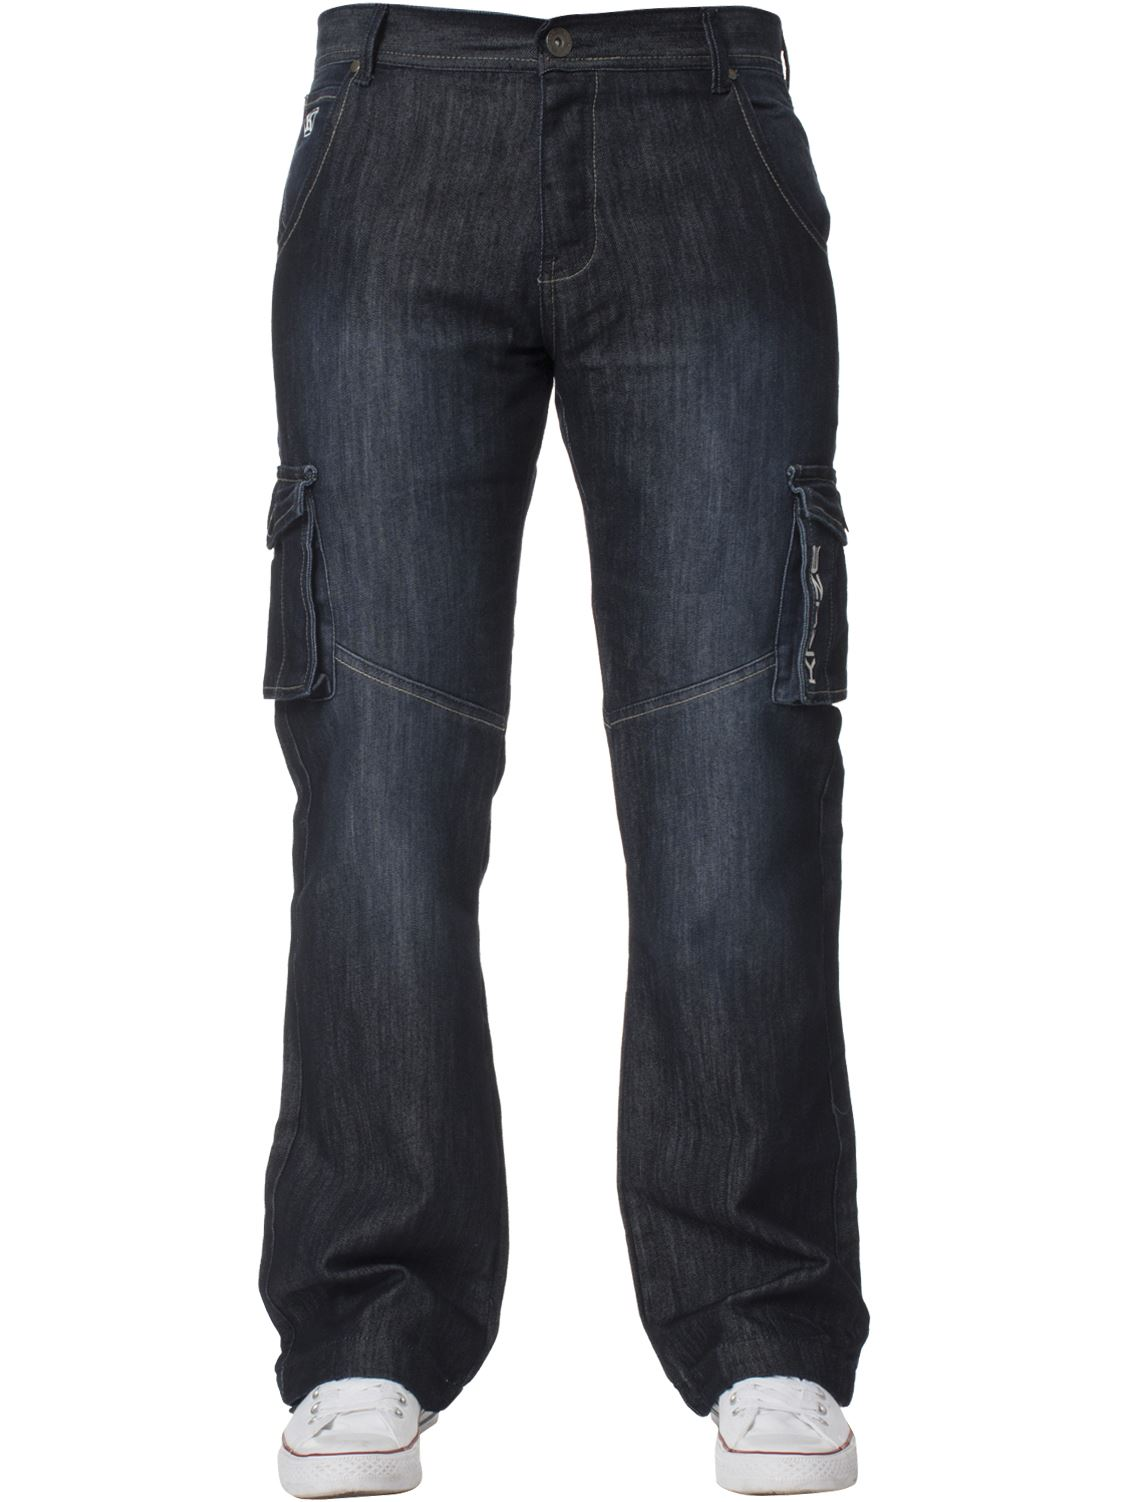 Mens-Cargo-Combat-Trousers-Jeans-Heavy-Duty-Work-Casual-Pants-Big-Tall-All-Sizes thumbnail 9